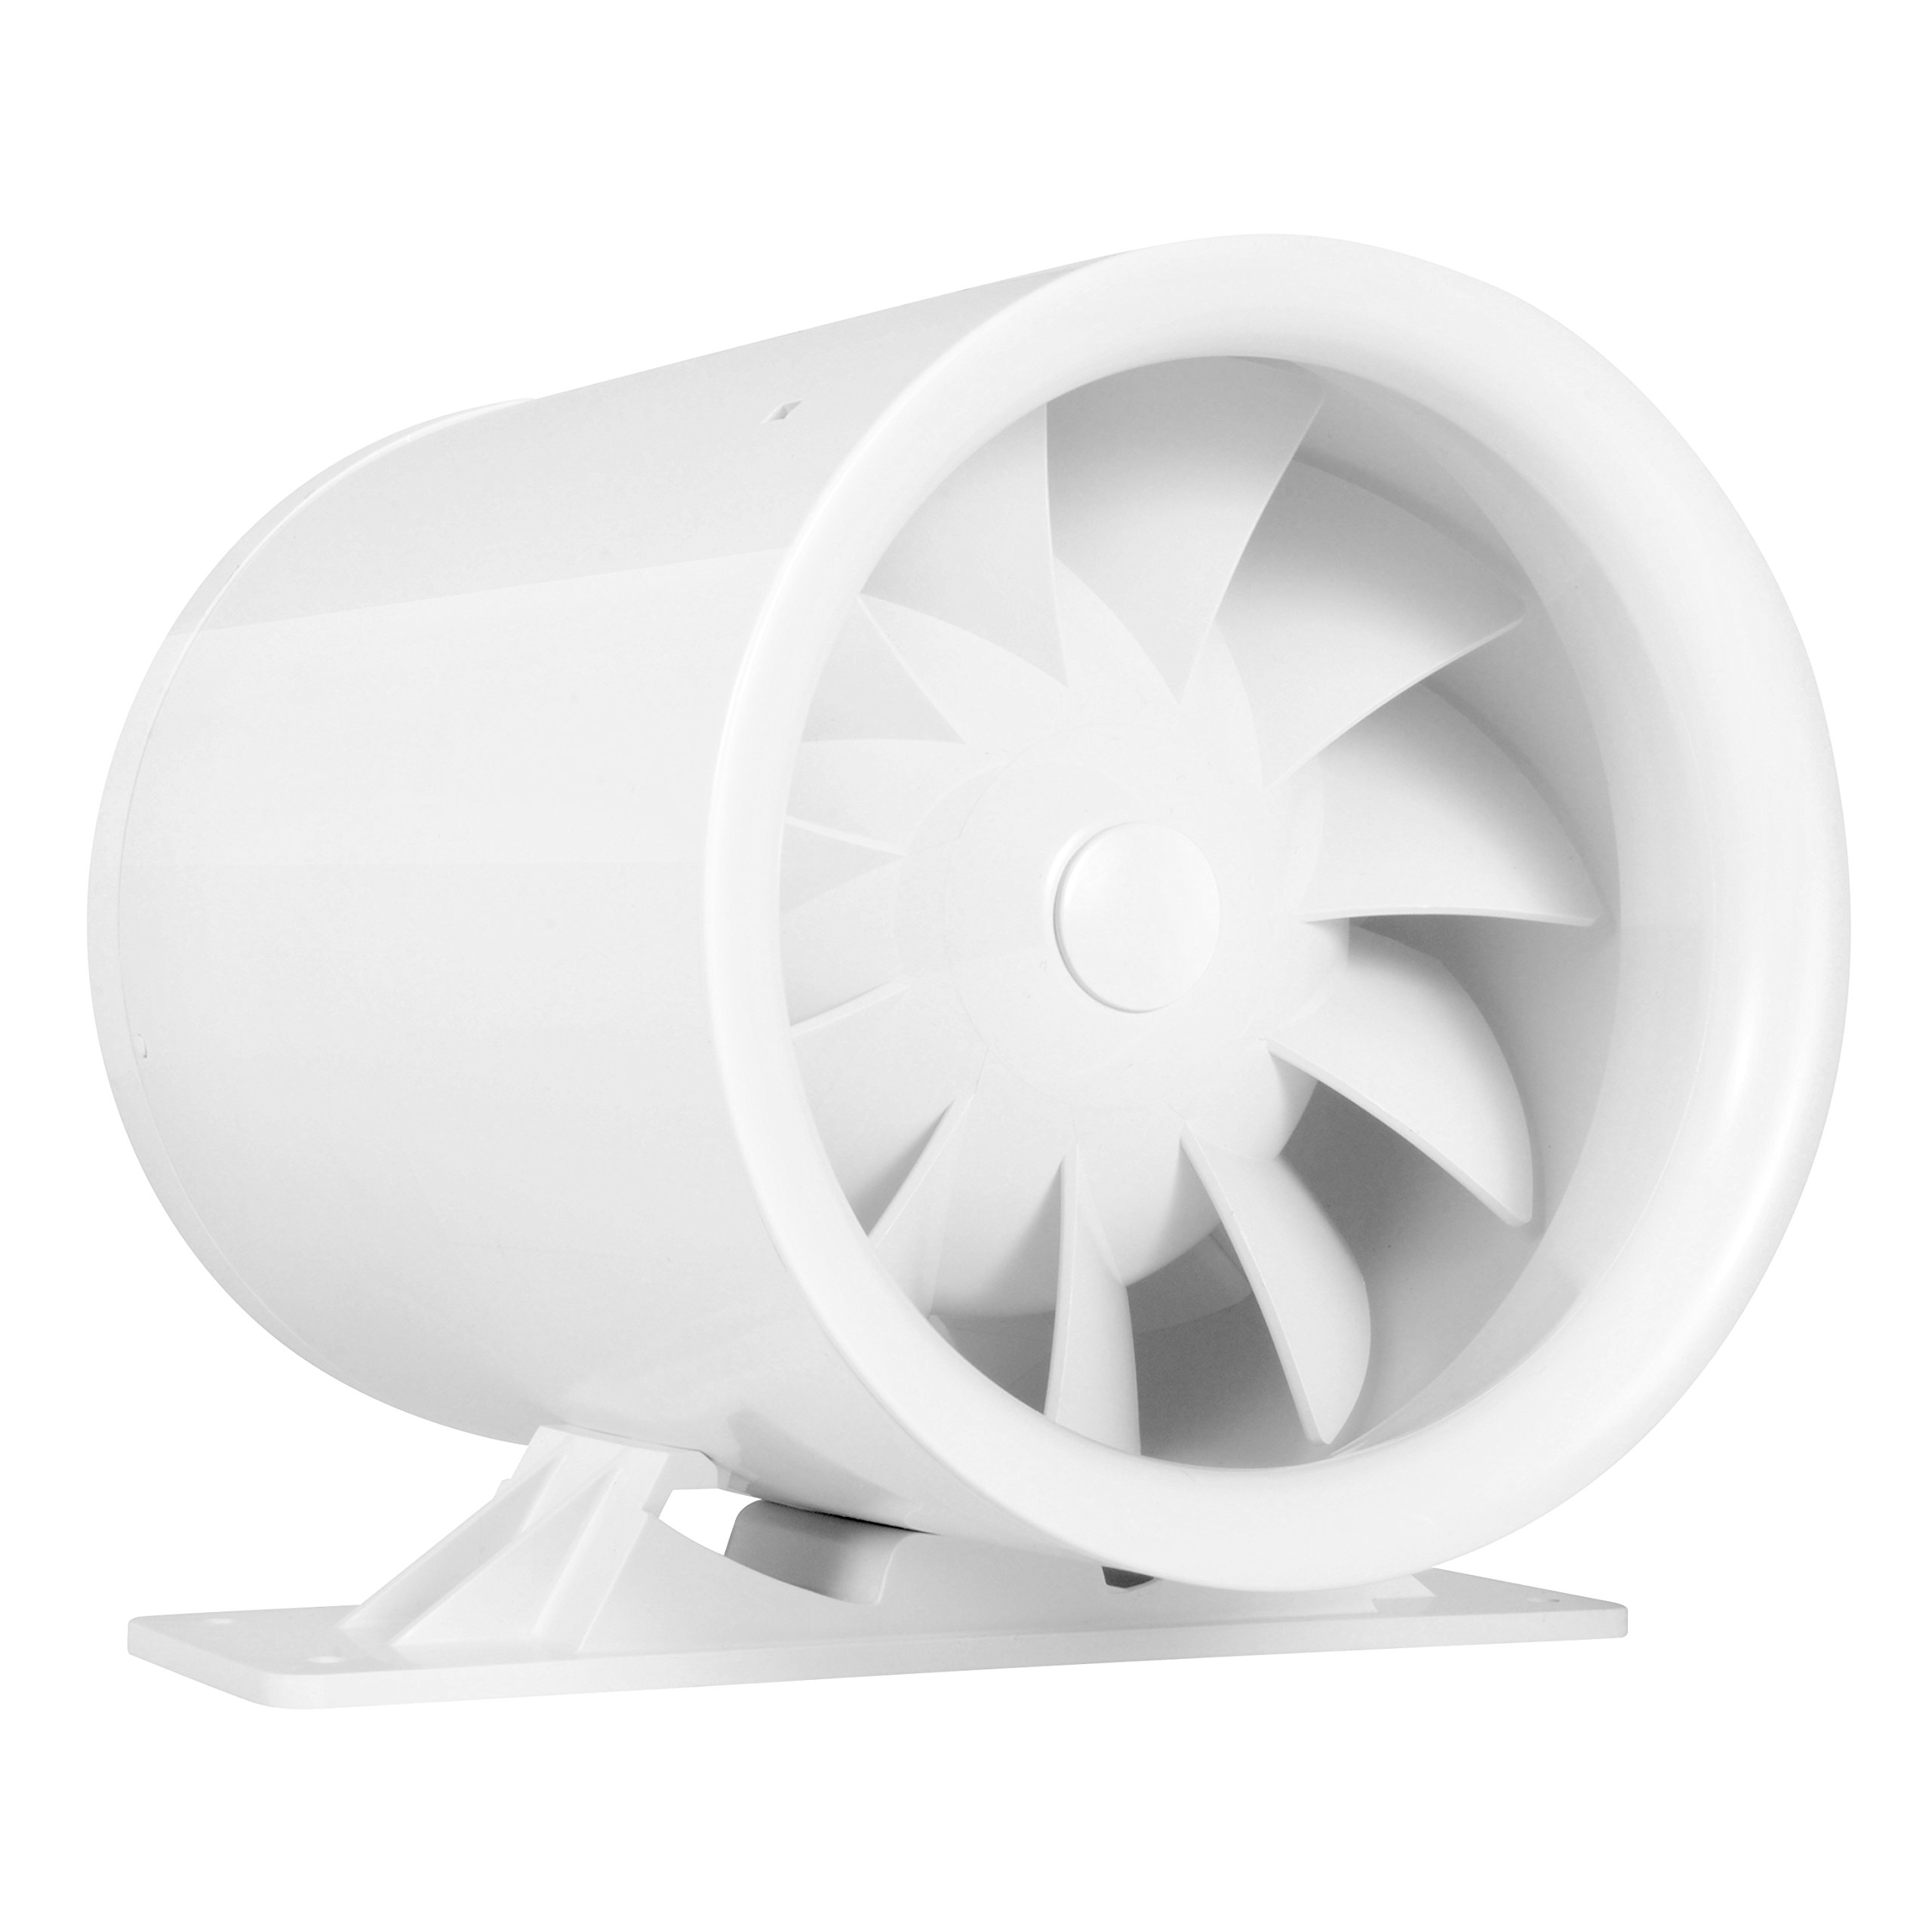 6'' Silent Inline Duct Fan, 26W, 188 CFM, Quiet Mixed-Flow Energy Efficient Blower for Air Circulation in Ducting, Vents, Grow Tents